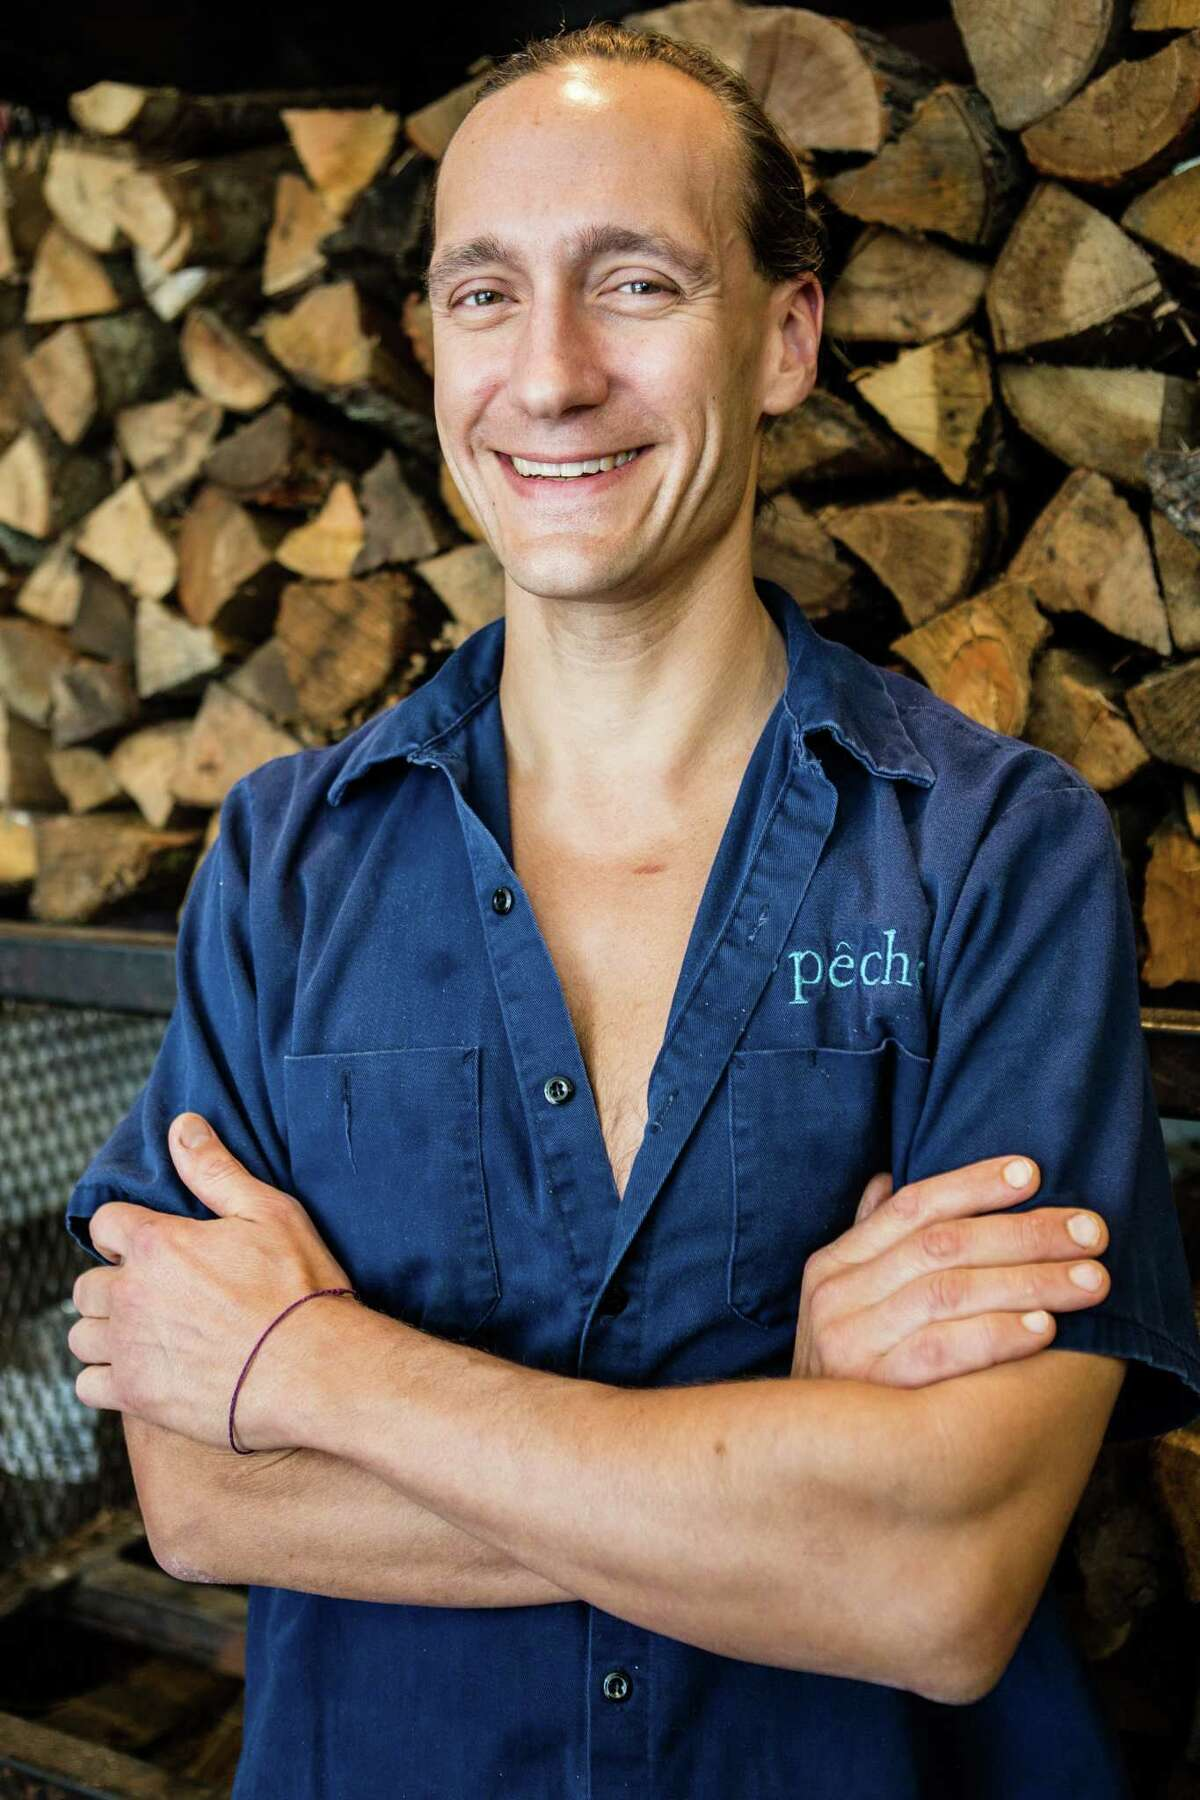 Ryan Prewitt of Peche Seafood Grill in New Orleans will be among the chefs participating in Southern Smoke on Sept. 30, 2018.